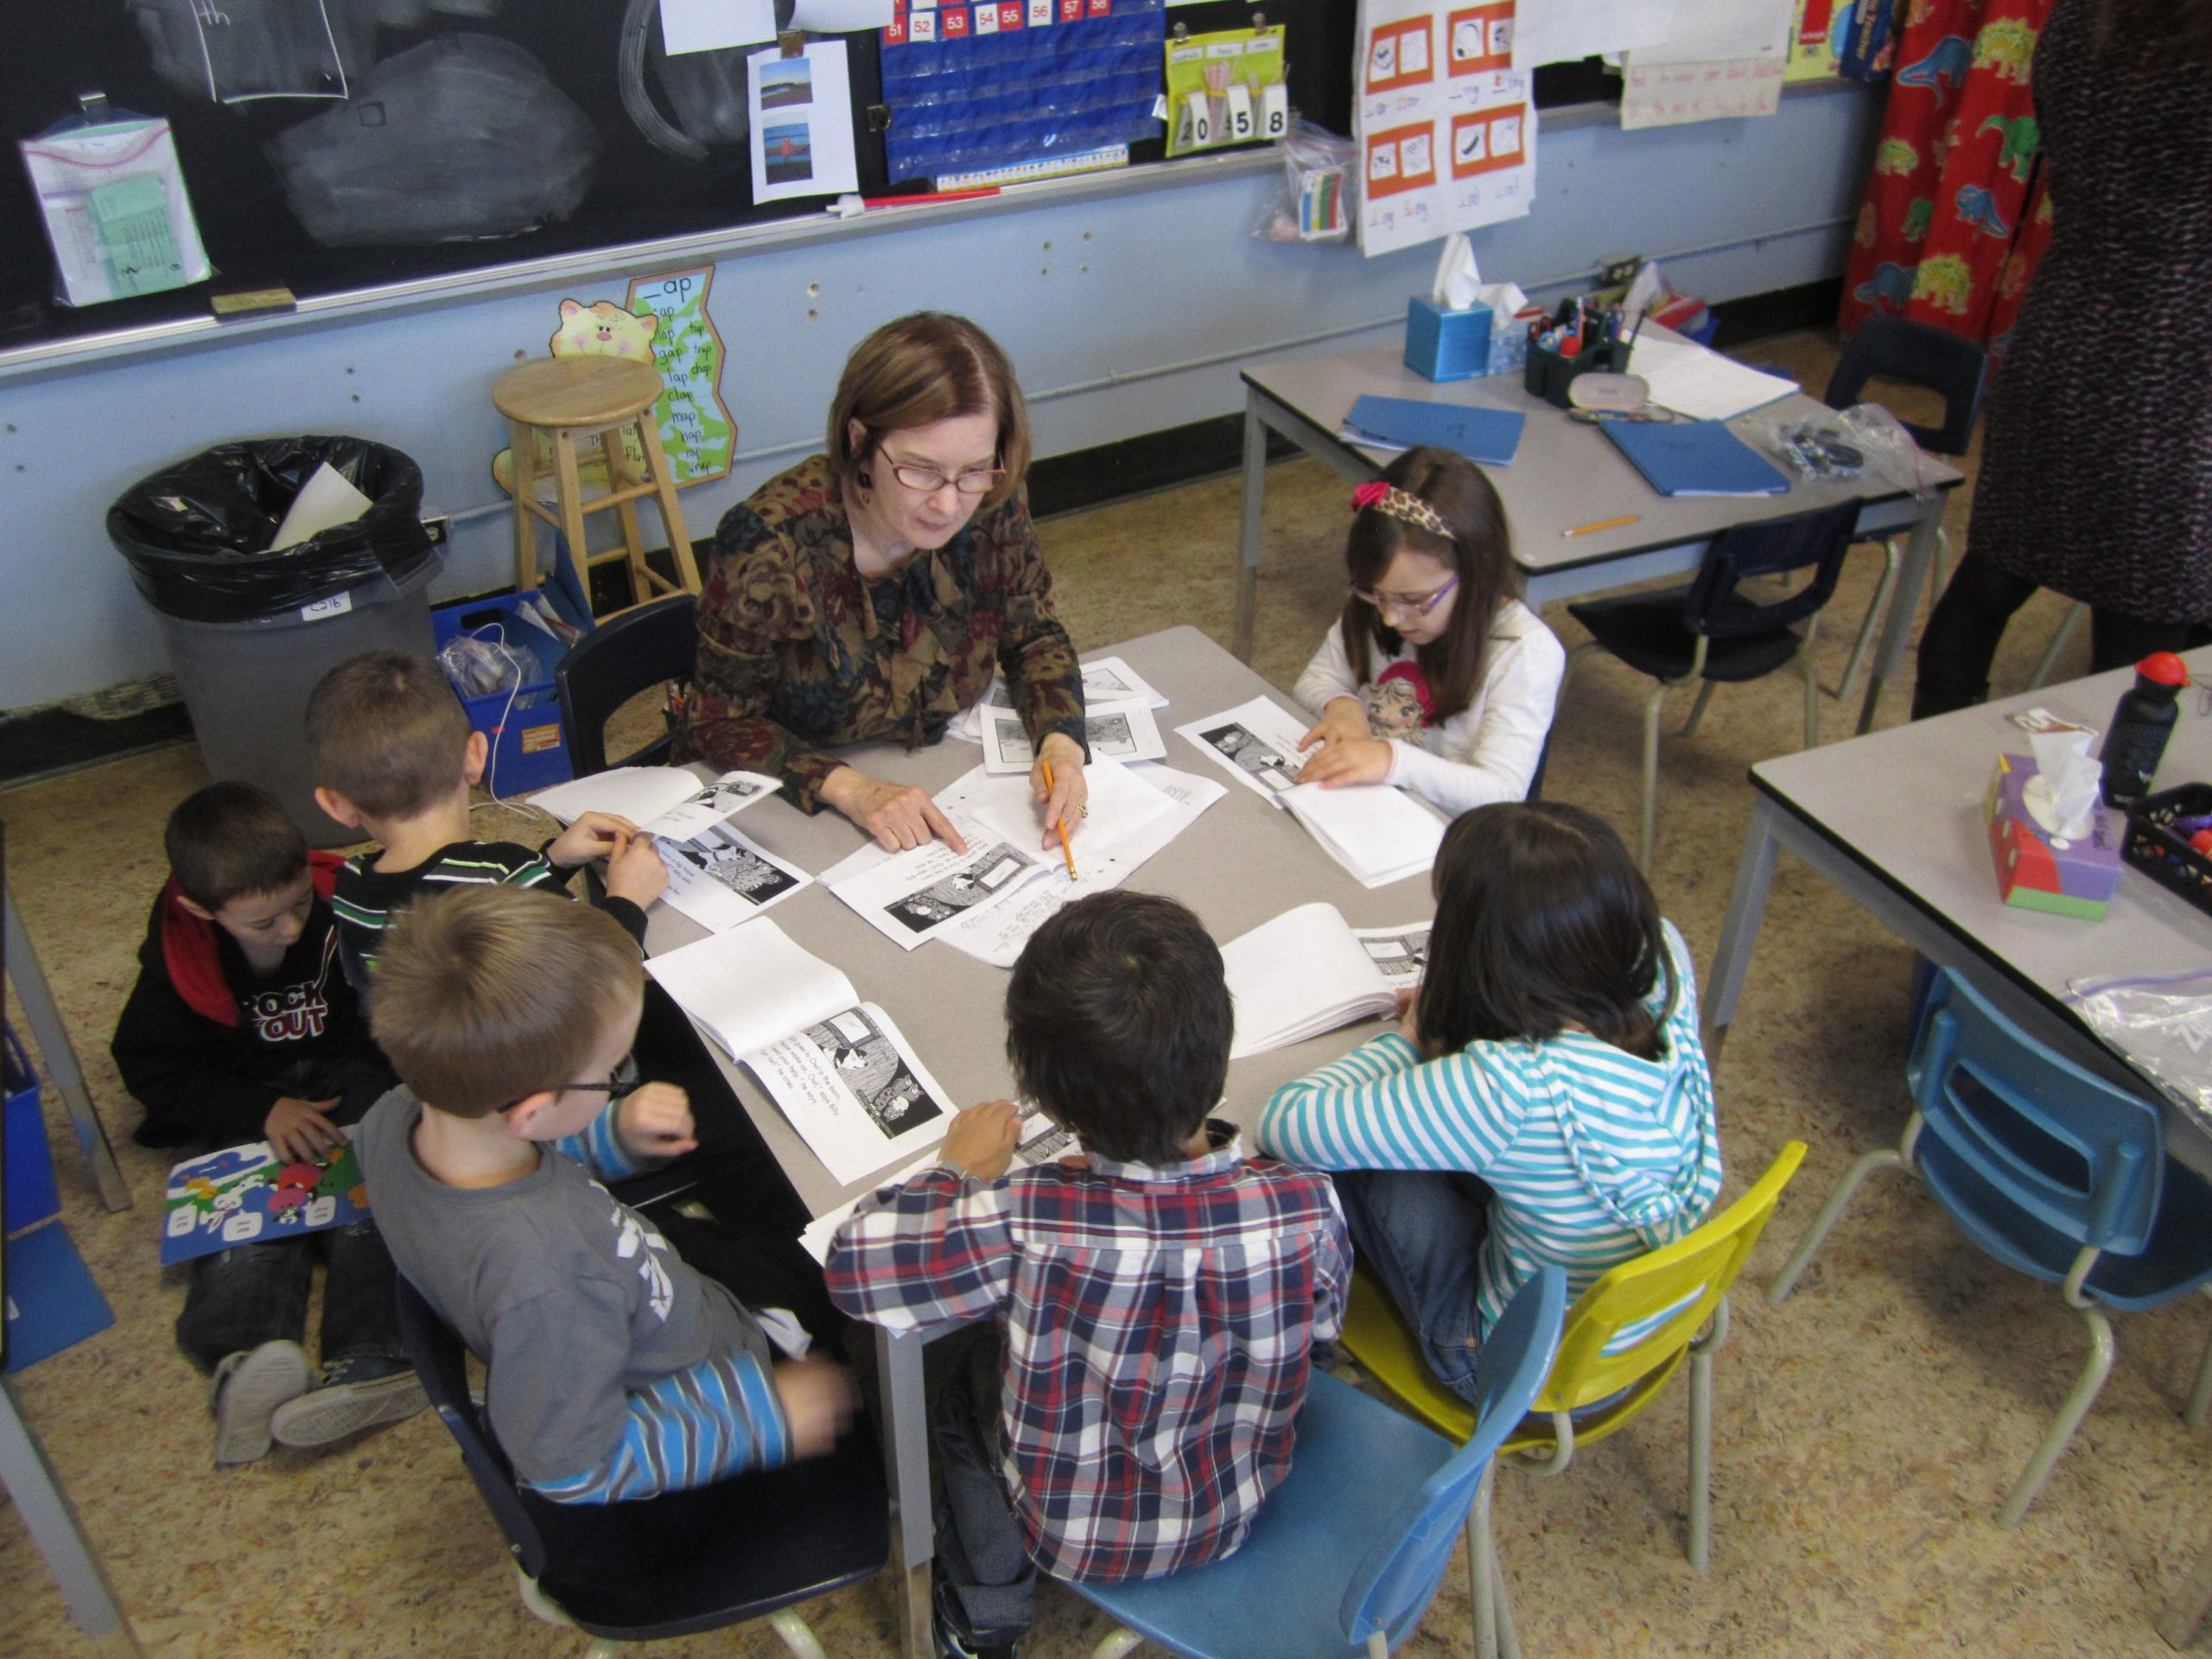 Teacher Profile: An interview with Cycle 1 teacher Mary Ellen Lynch